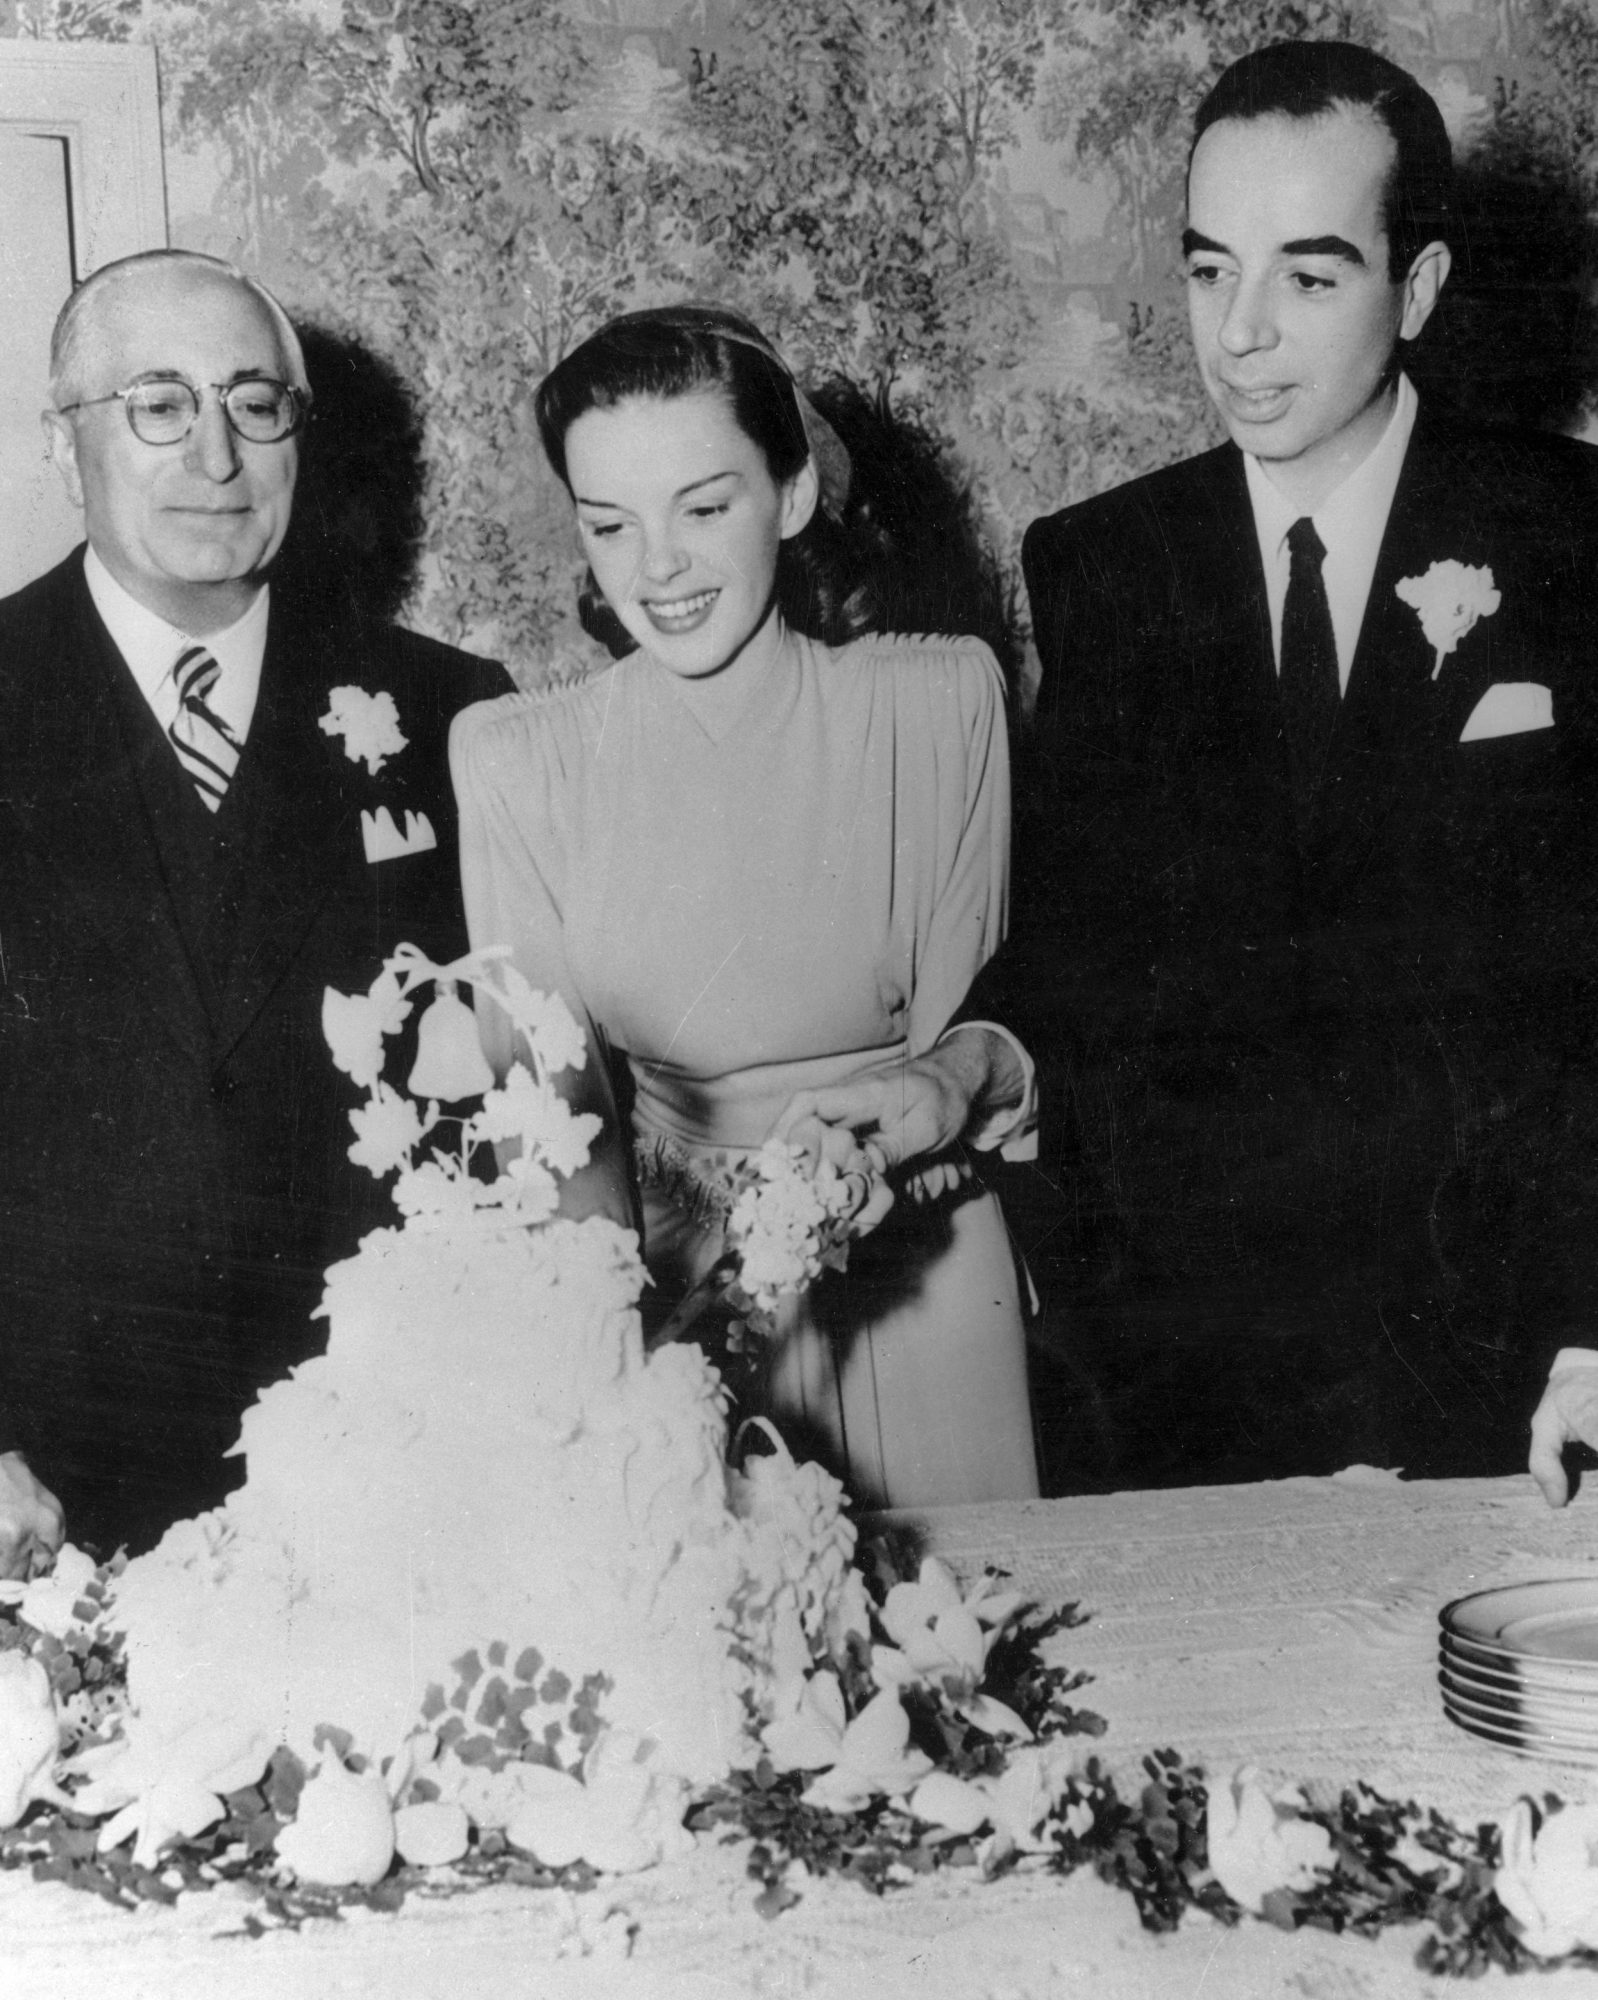 celebrity-vintage-wedding-cakes-judy-garland-3368101-1015.jpg